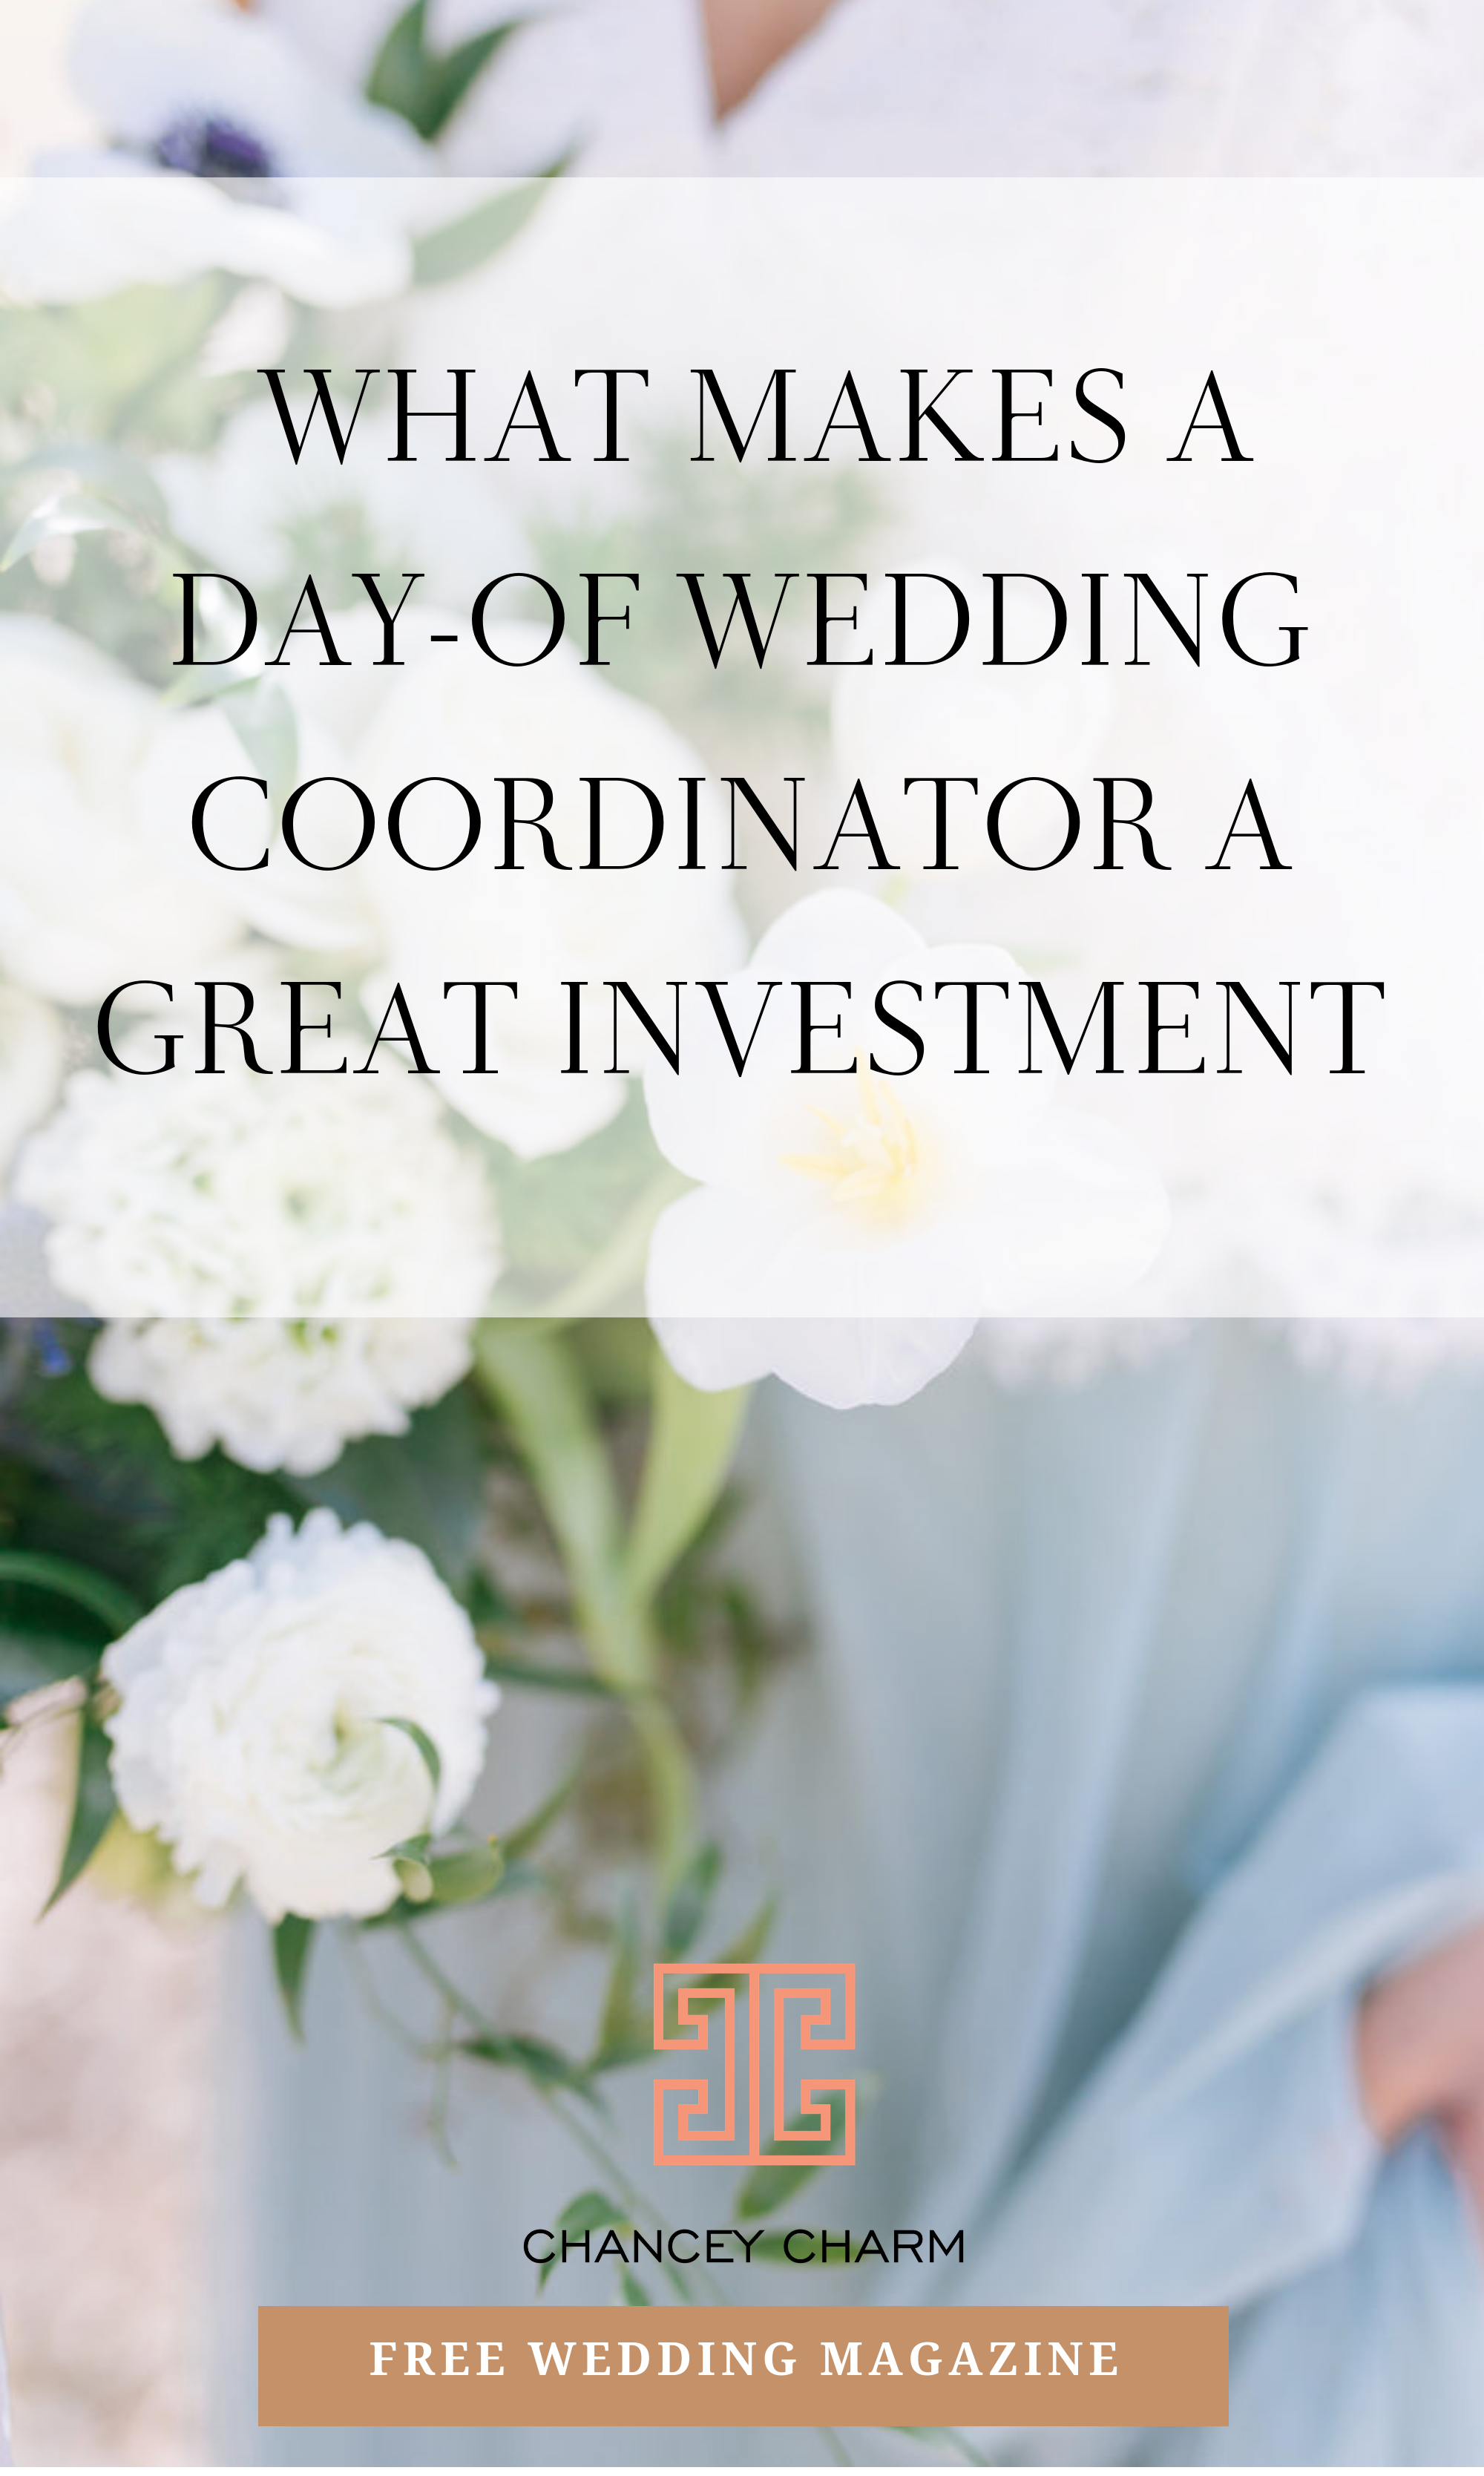 What Does A Wedding Coordinator Do How Much Does A Wedding Coordinator Cost In 2020 Wedding Coordinator Wedding Planner Course Wedding Planner Education